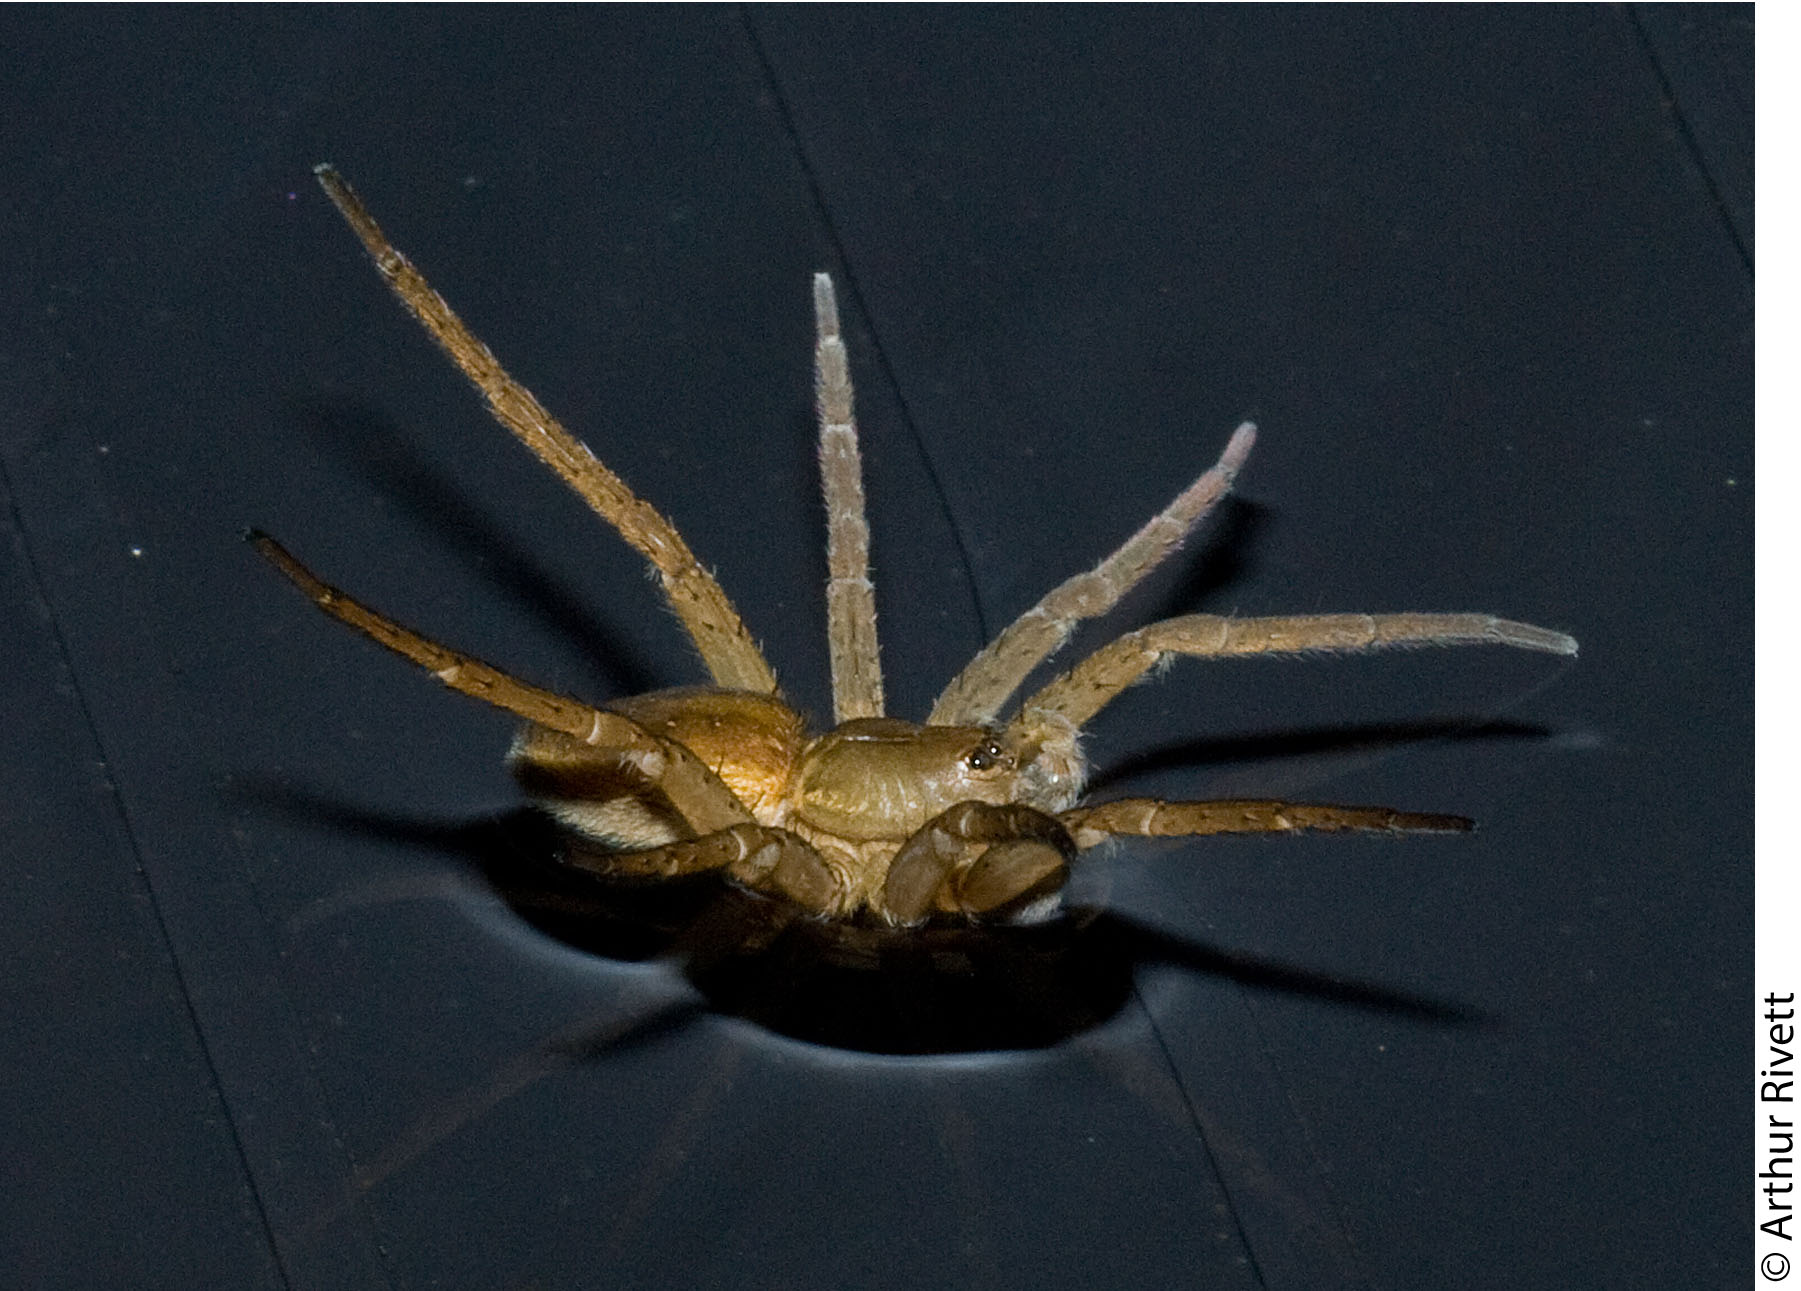 Dolomedes plantarius sailing by raising all of its legs!